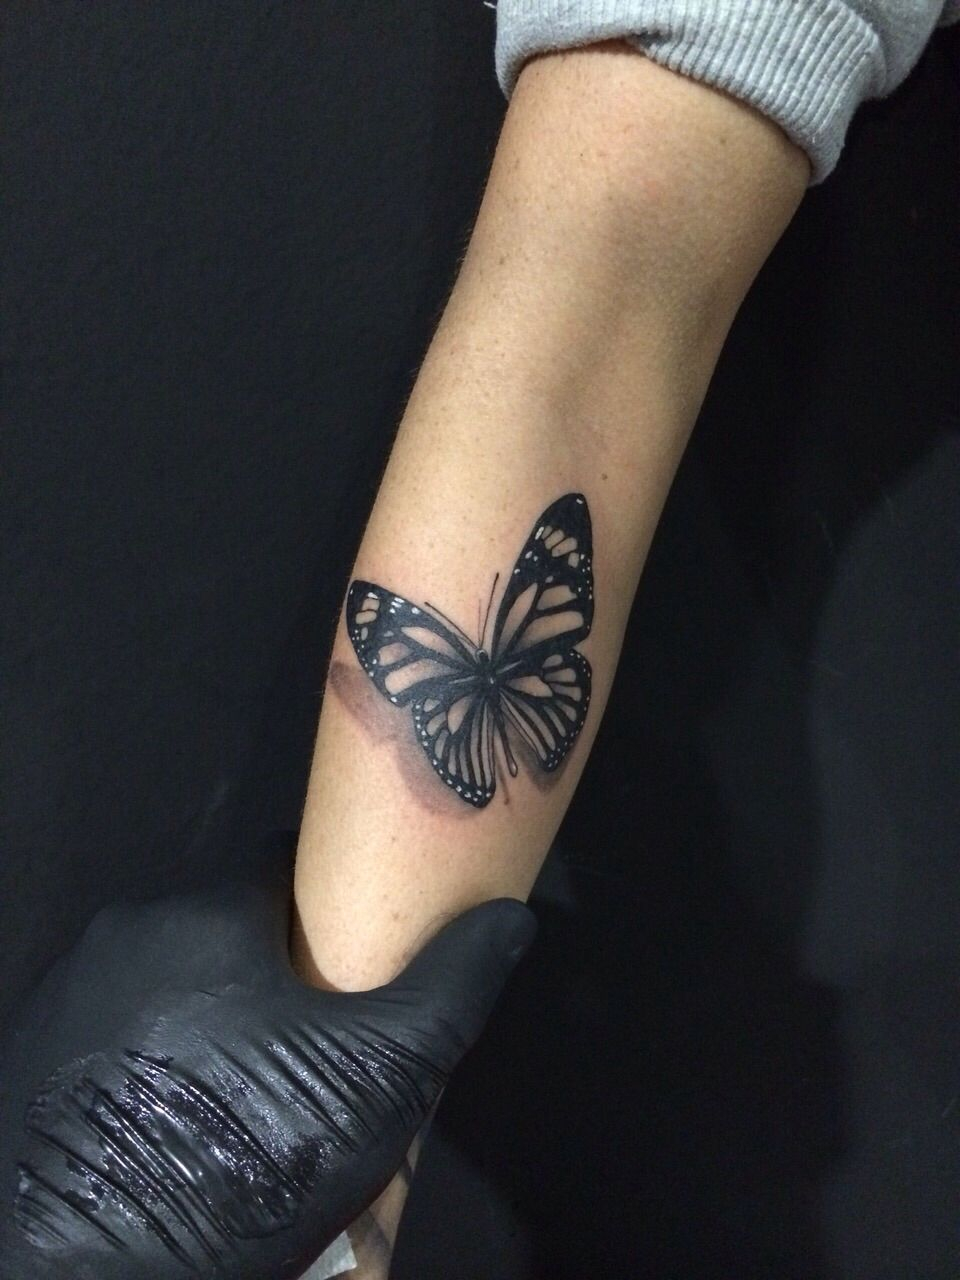 Butterfly Forearm Tattoo Tattoo Butterfly Wrist Tattoo Tattoos inside dimensions 960 X 1280